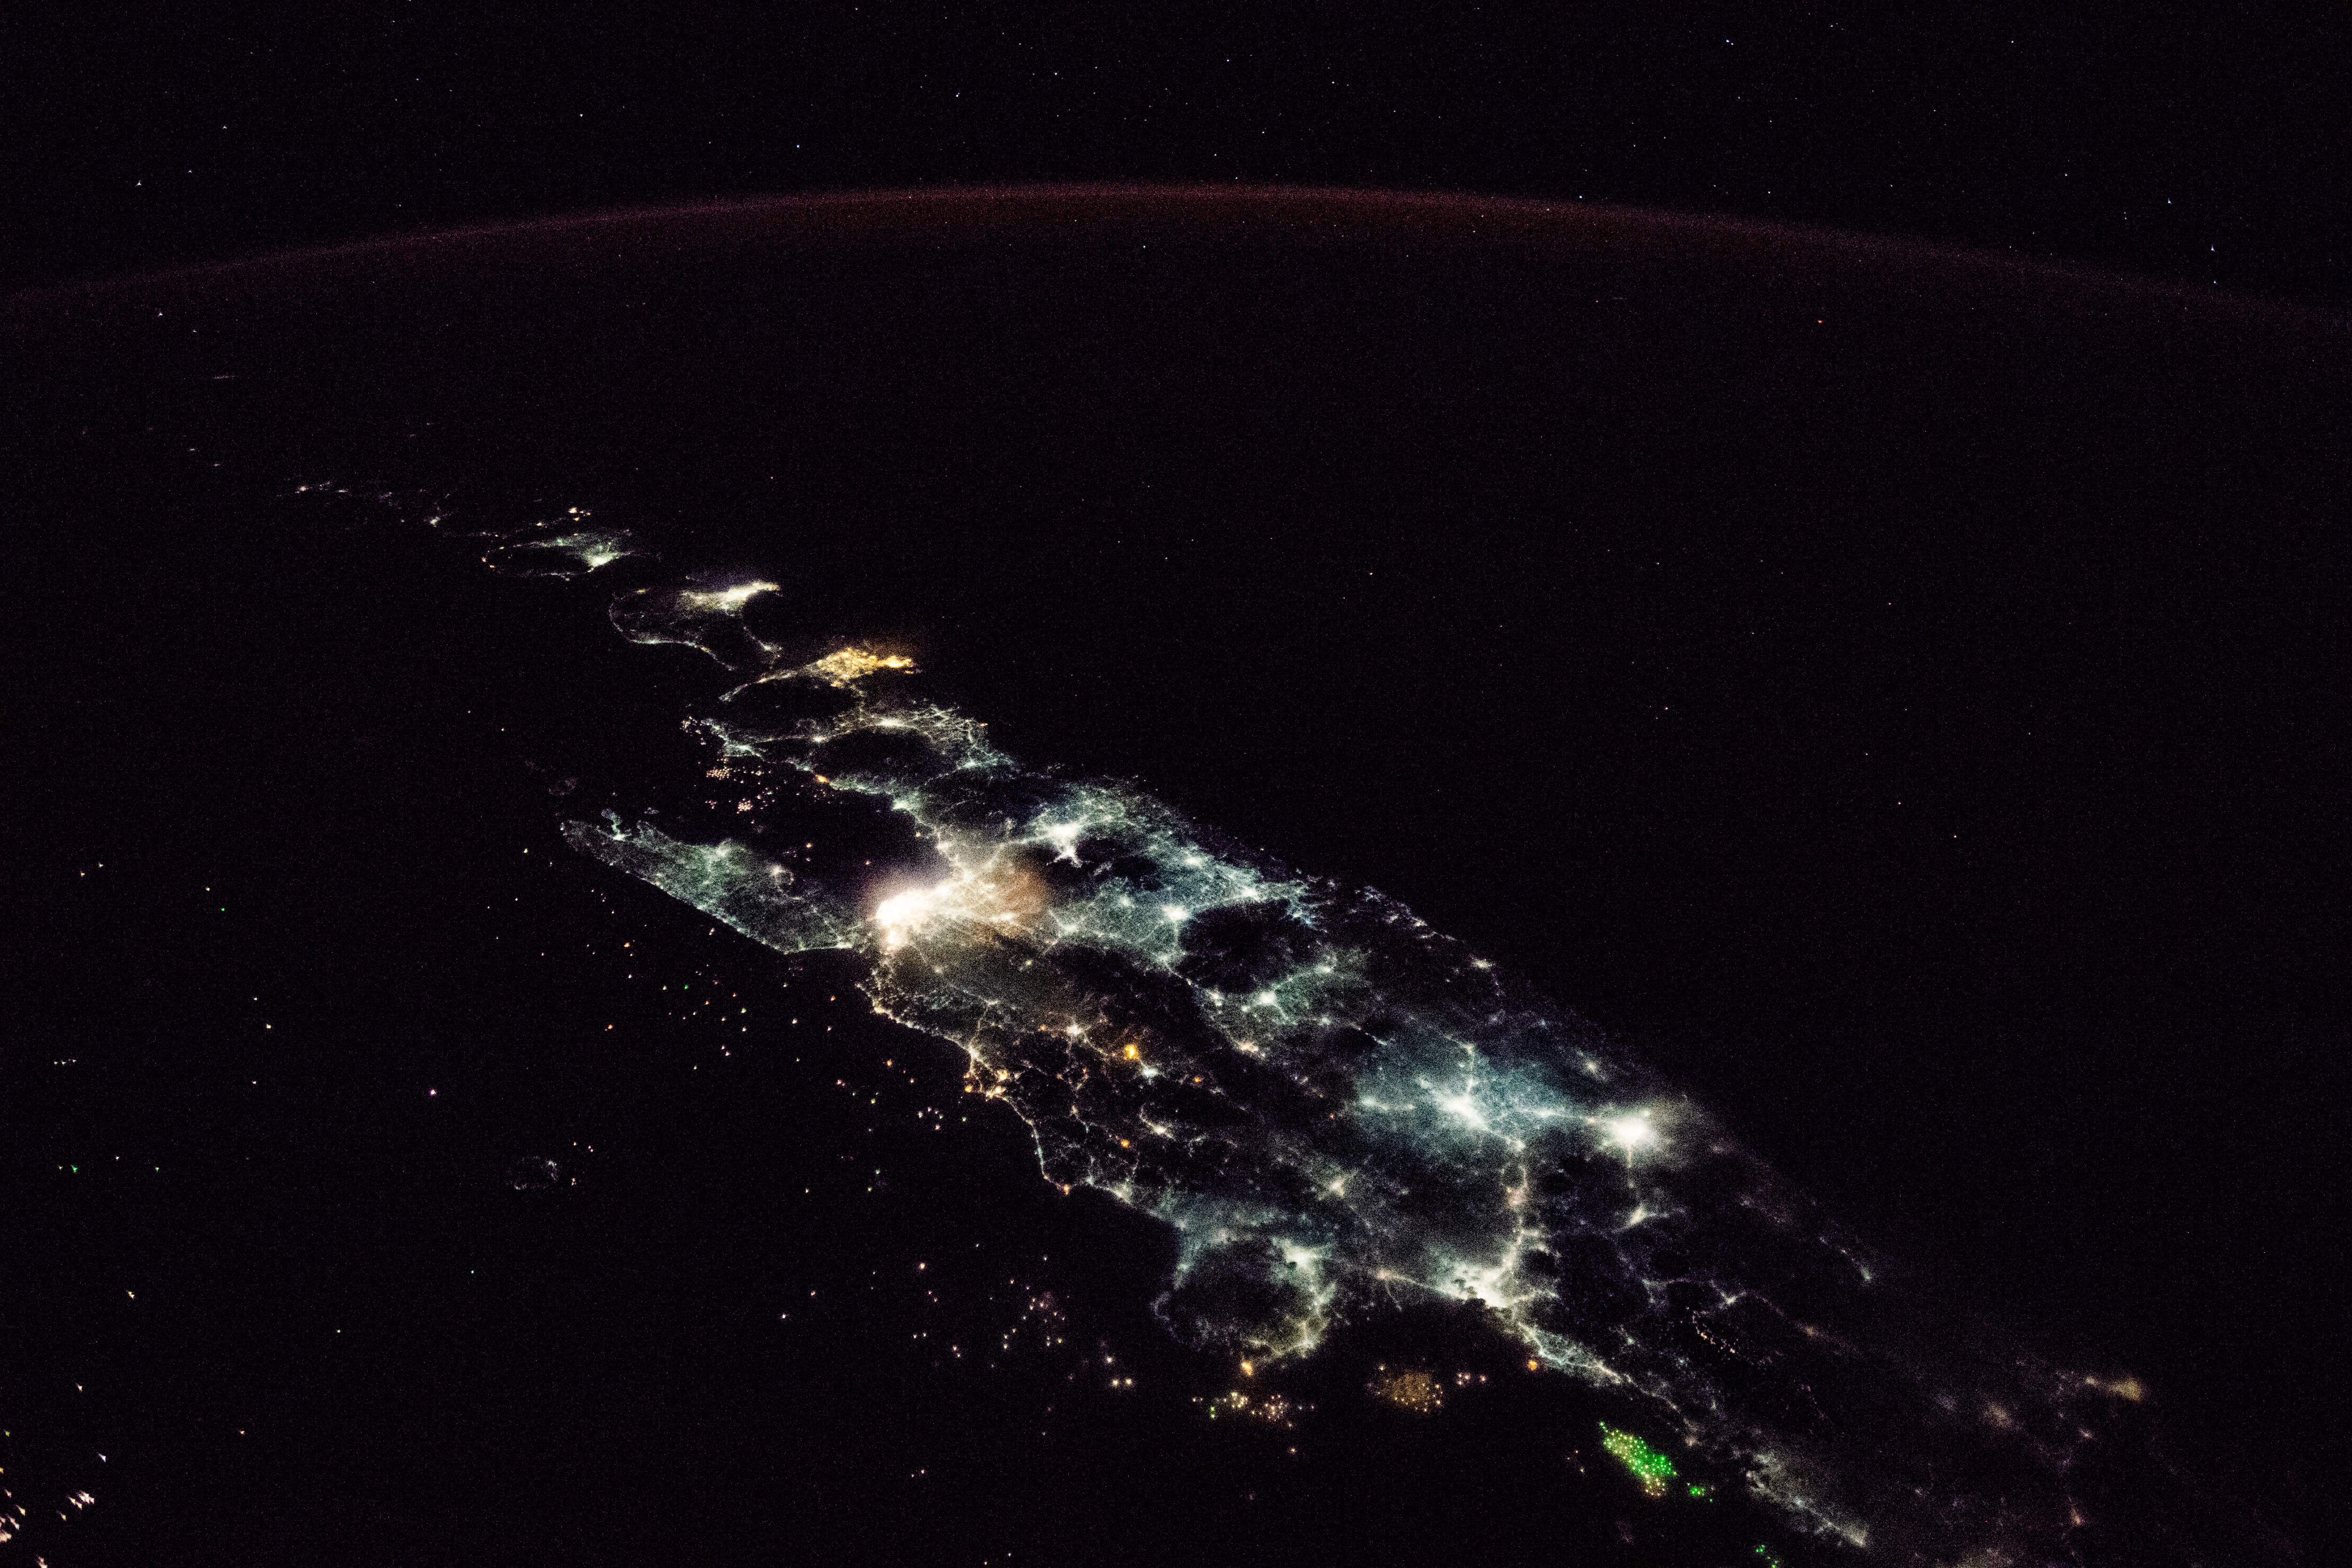 Source: ISS